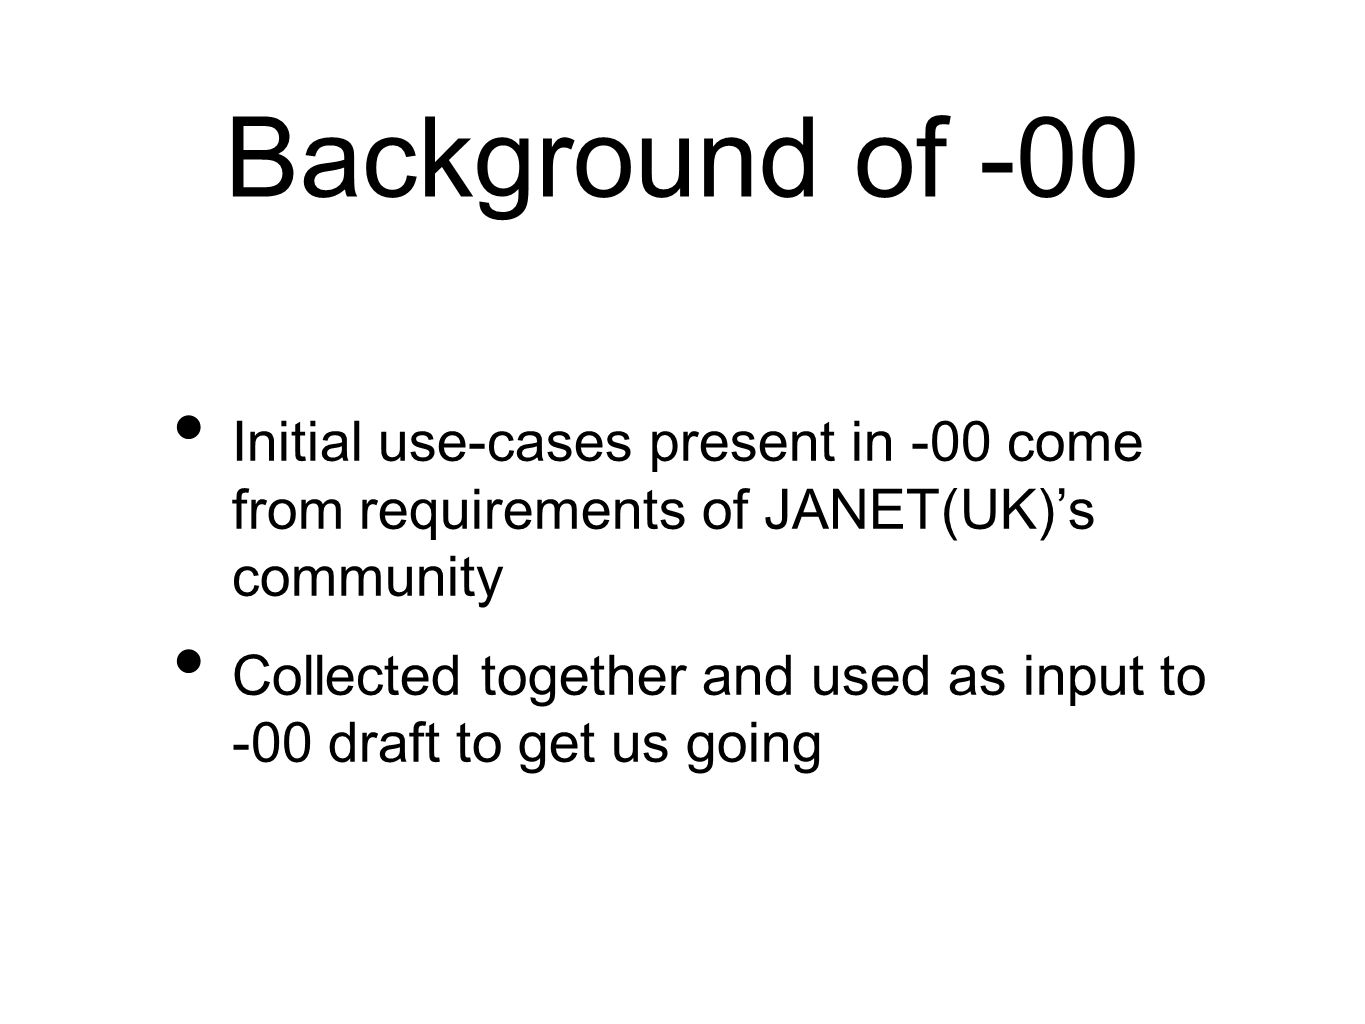 Background of -00 Initial use-cases present in -00 come from requirements of JANET(UK)s community Collected together and used as input to -00 draft to get us going